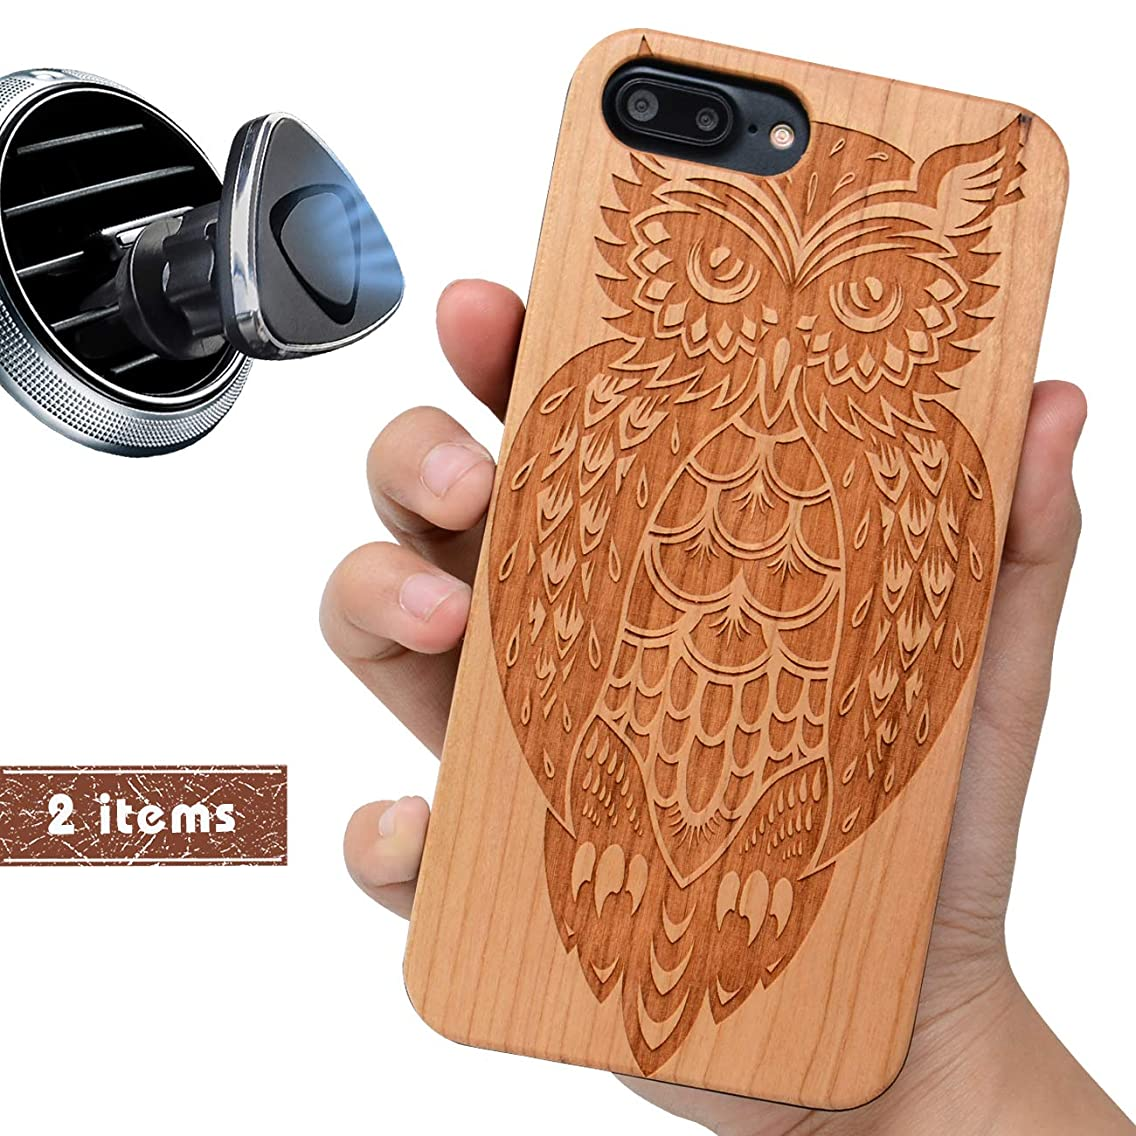 iProductsUS Wood Phone Case Compatible with iPhone 8 7 6/6S (4.7 inch) and Magnetic Mount - Protective Cases Engraving Cool Owl,Built in Metal Plate, TPU Shockproof & Protective Phone Covers (4.7